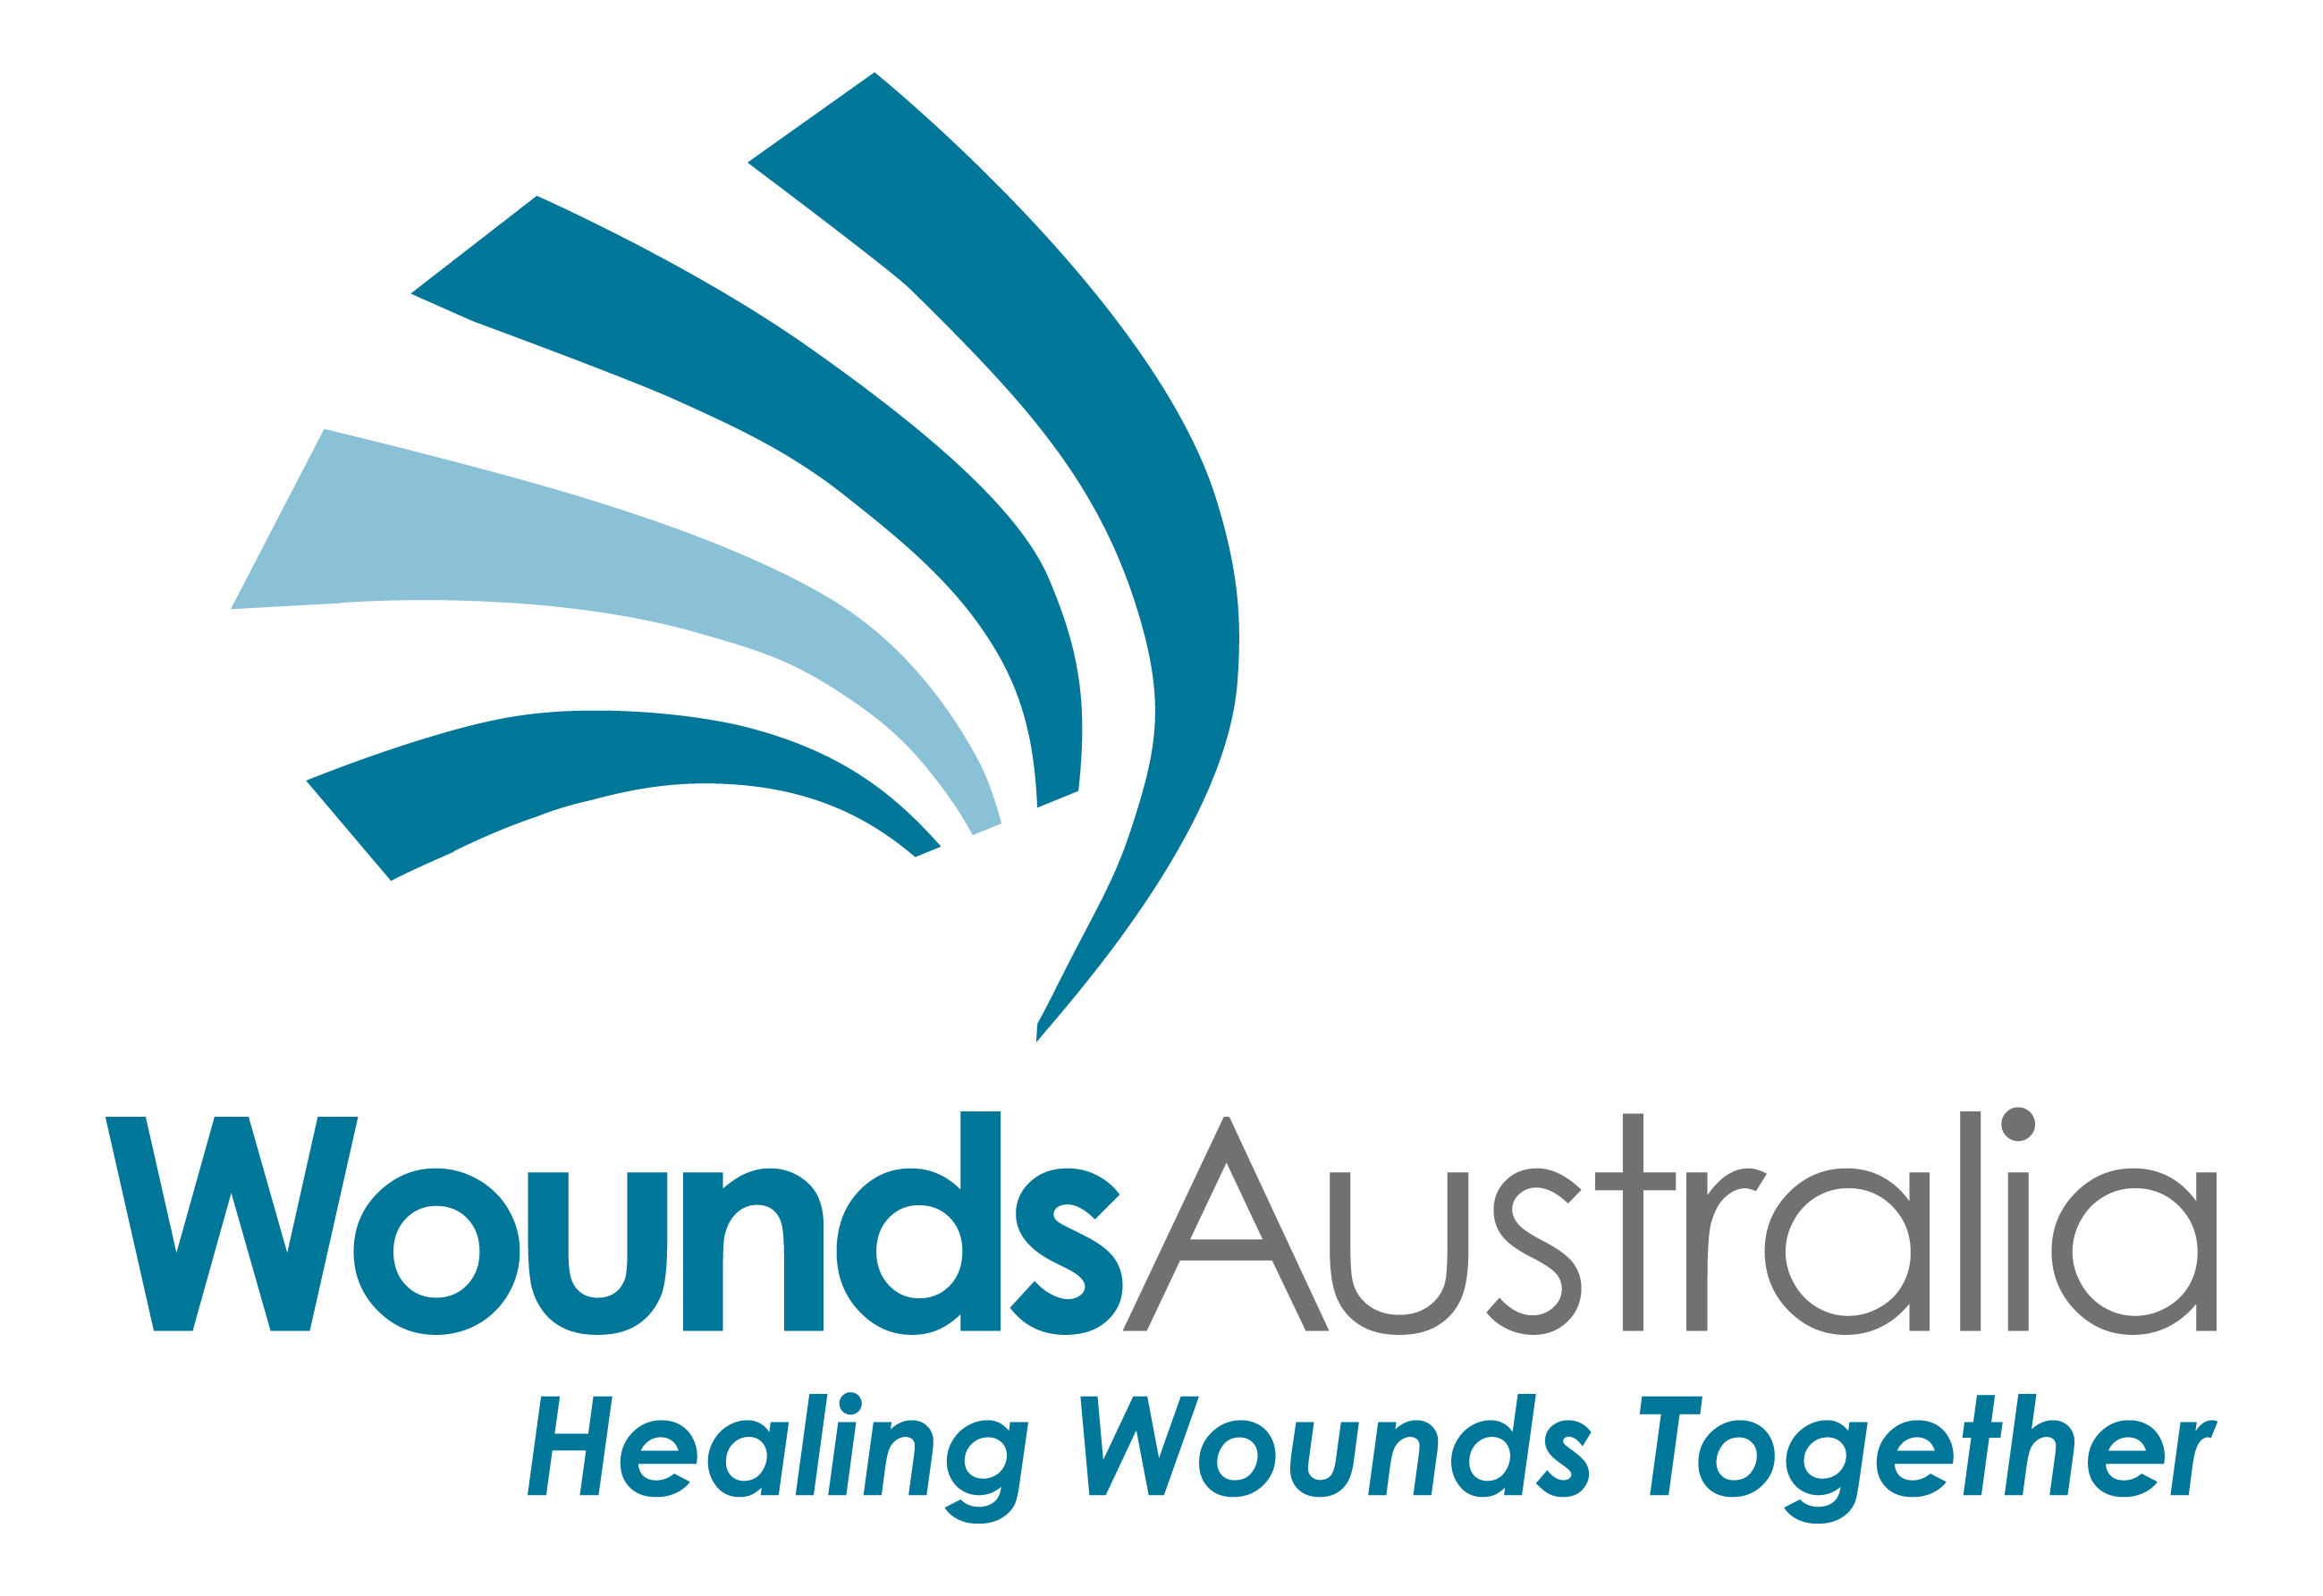 Wounds_Australia_Logo_-_HIGH_RES_-_TRANSPARENT_BACKGROUND.png